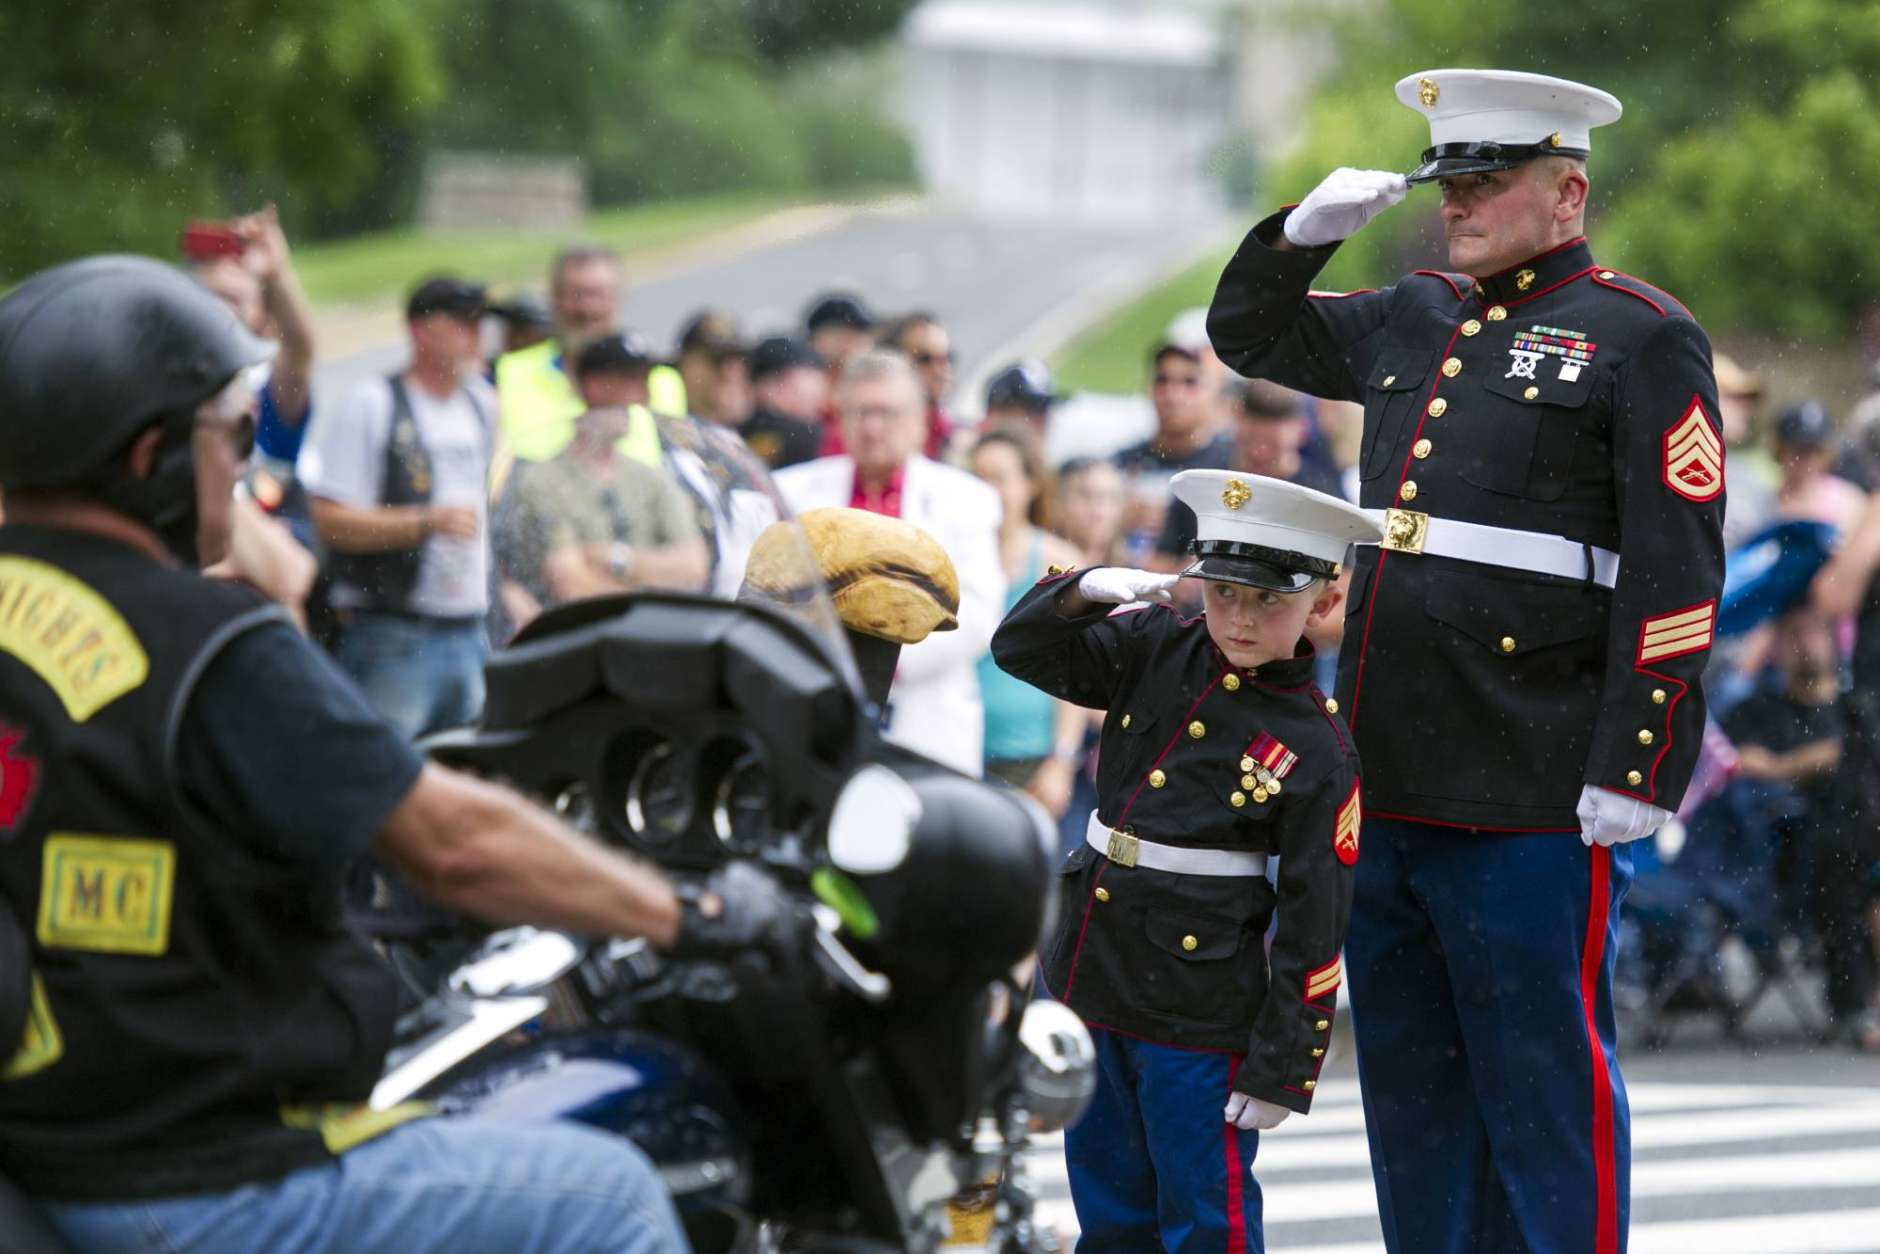 Motorcyclists pass Marine Staff Sgt. Tim Chambers, Ret., and Christian Jacobs, 6, of Hertford, N.C., as they salute during the 30th anniversary of the Rolling Thunder 'Ride for Freedom' demonstration in Washington, Sunday, May 28, 2017. Jacobs father, Marine Sgt. Christopher Jacobs, was killed while serving in 2011. Rolling Thunder seeks to bring full accountability for all U.S. prisoners of war and missing in action (POW/MIA) soldiers. (AP Photo/Cliff Owen)